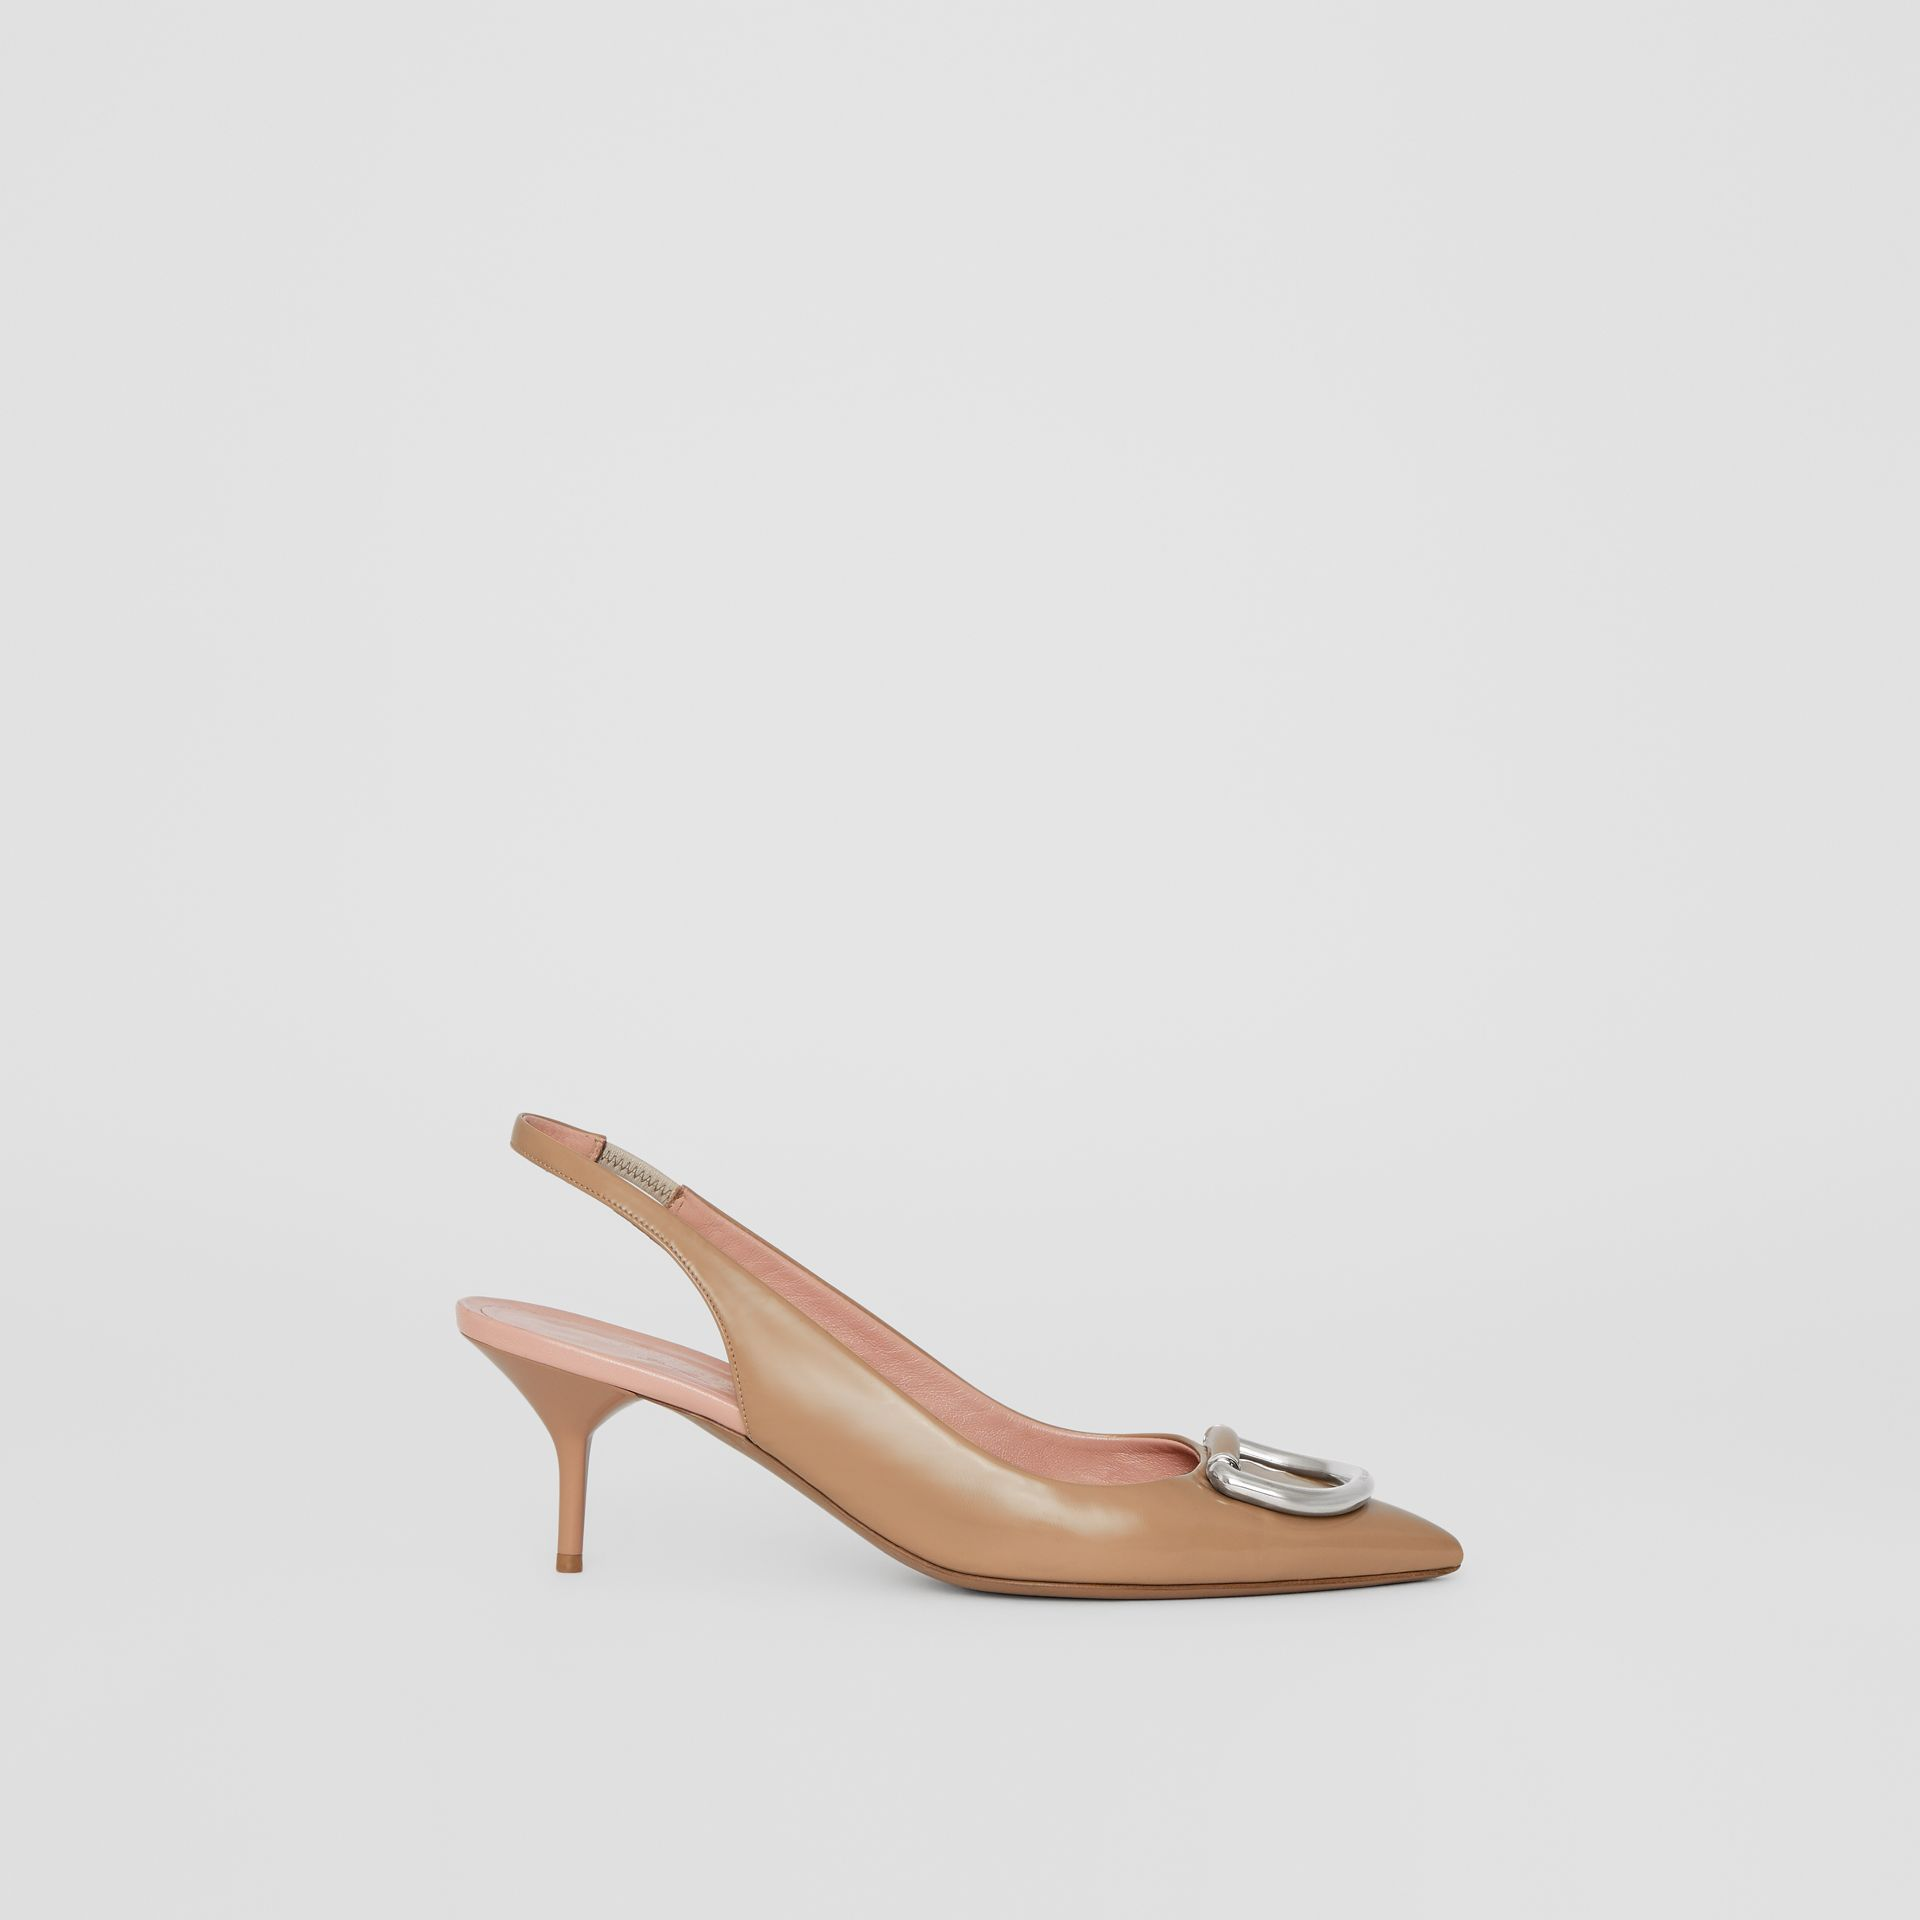 The Leather D-ring Slingback Pump in Nude Blush - Women | Burberry Hong Kong - gallery image 5